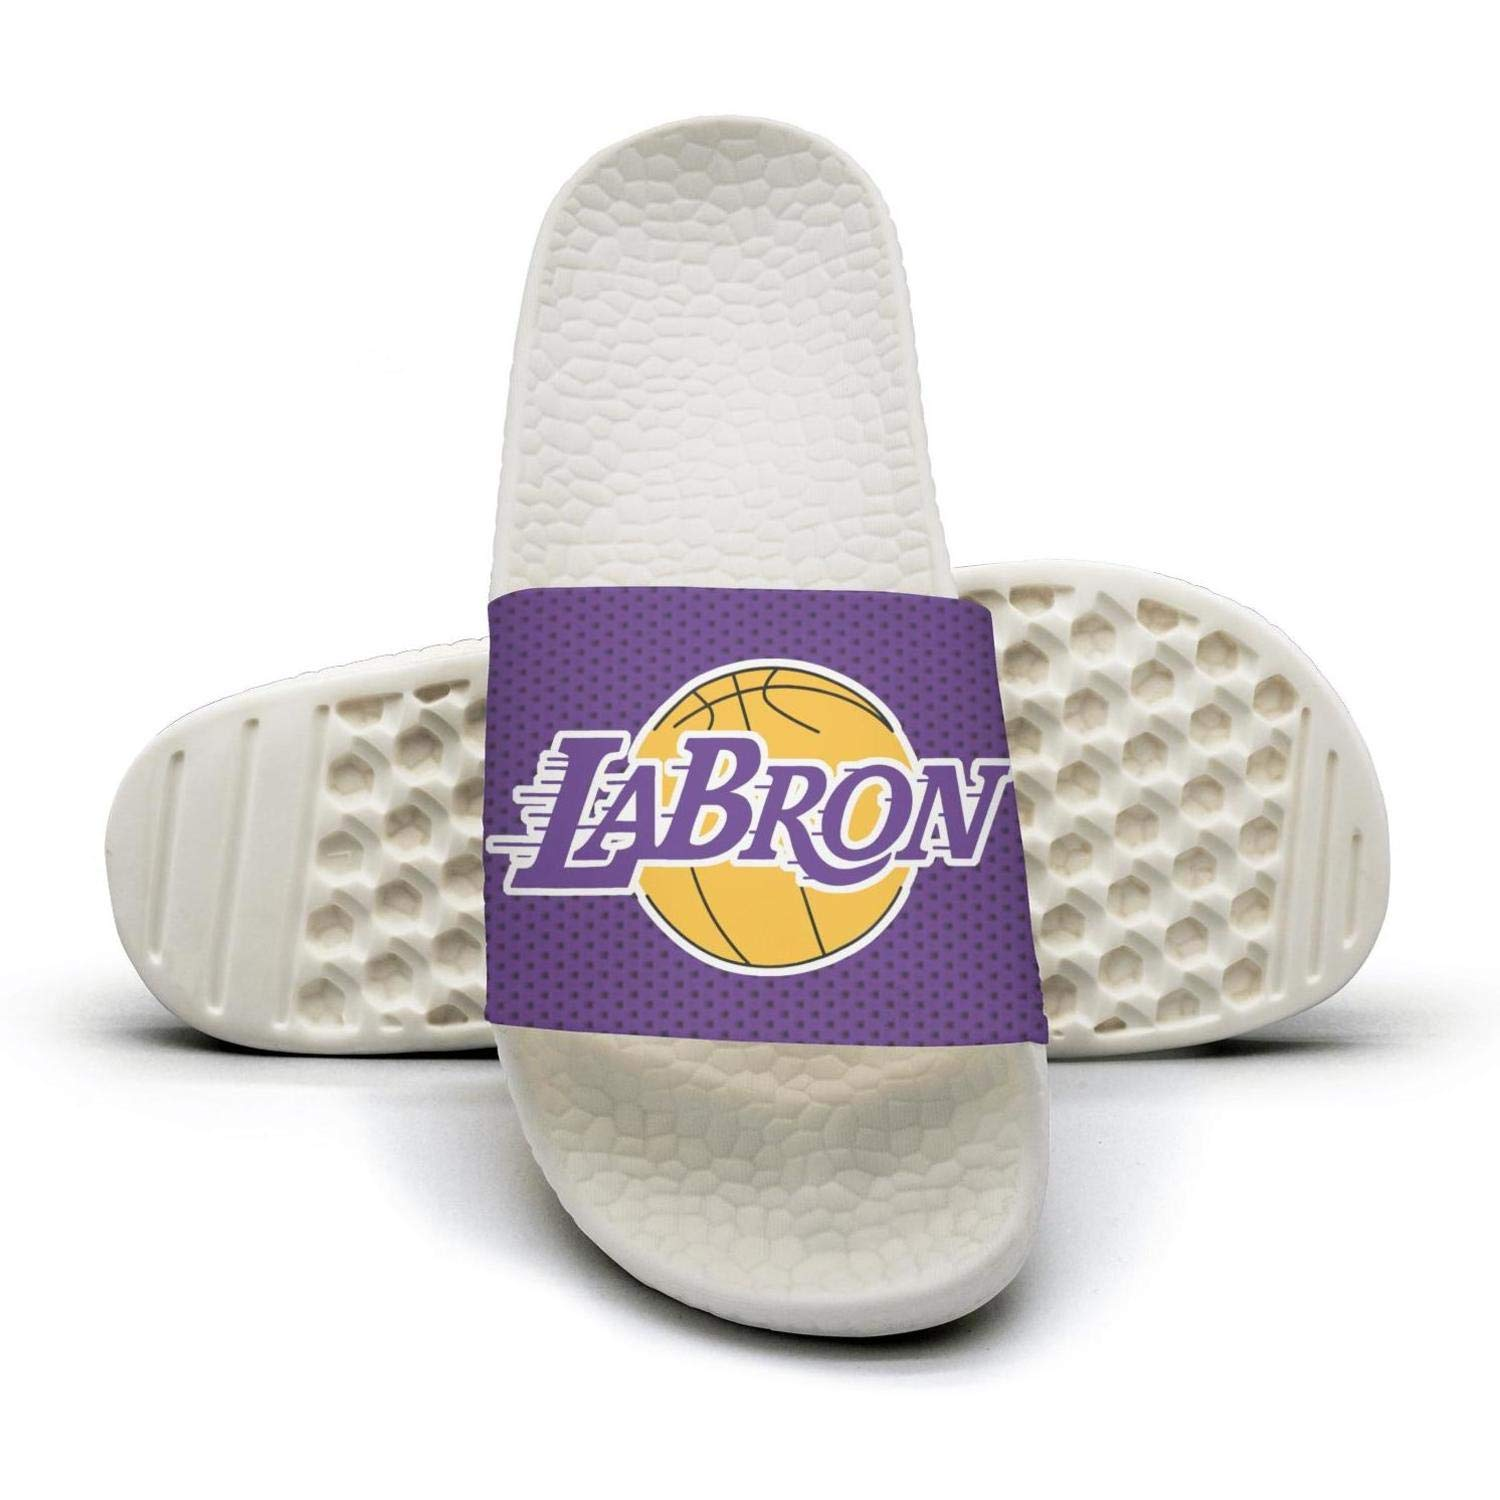 ADIDII Mens Printed Non-Slip Slipper Slide flip Flop Sandals La/_Bron/_Yellow/_Logo/_Basketball Summer Fashion